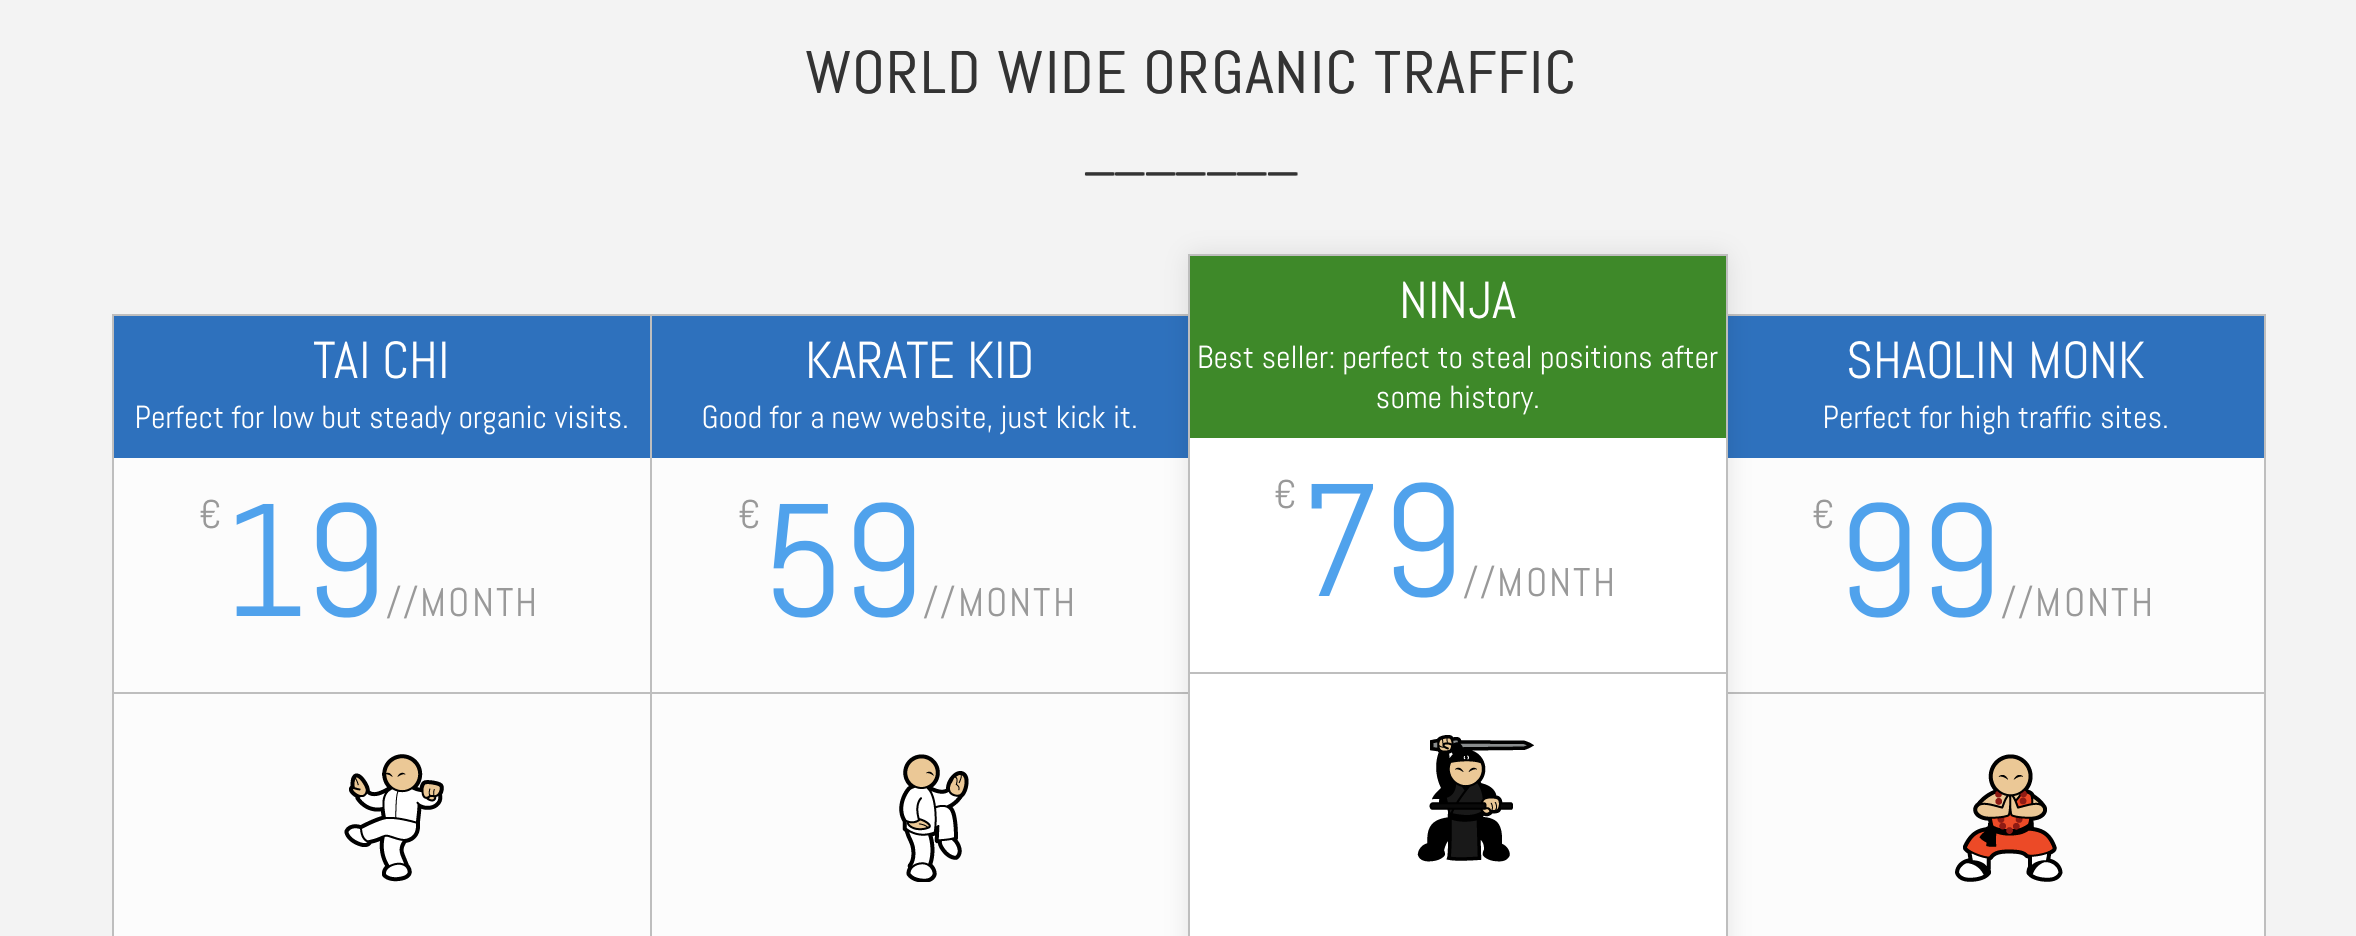 an example of various pricing for purchasing organic traffic